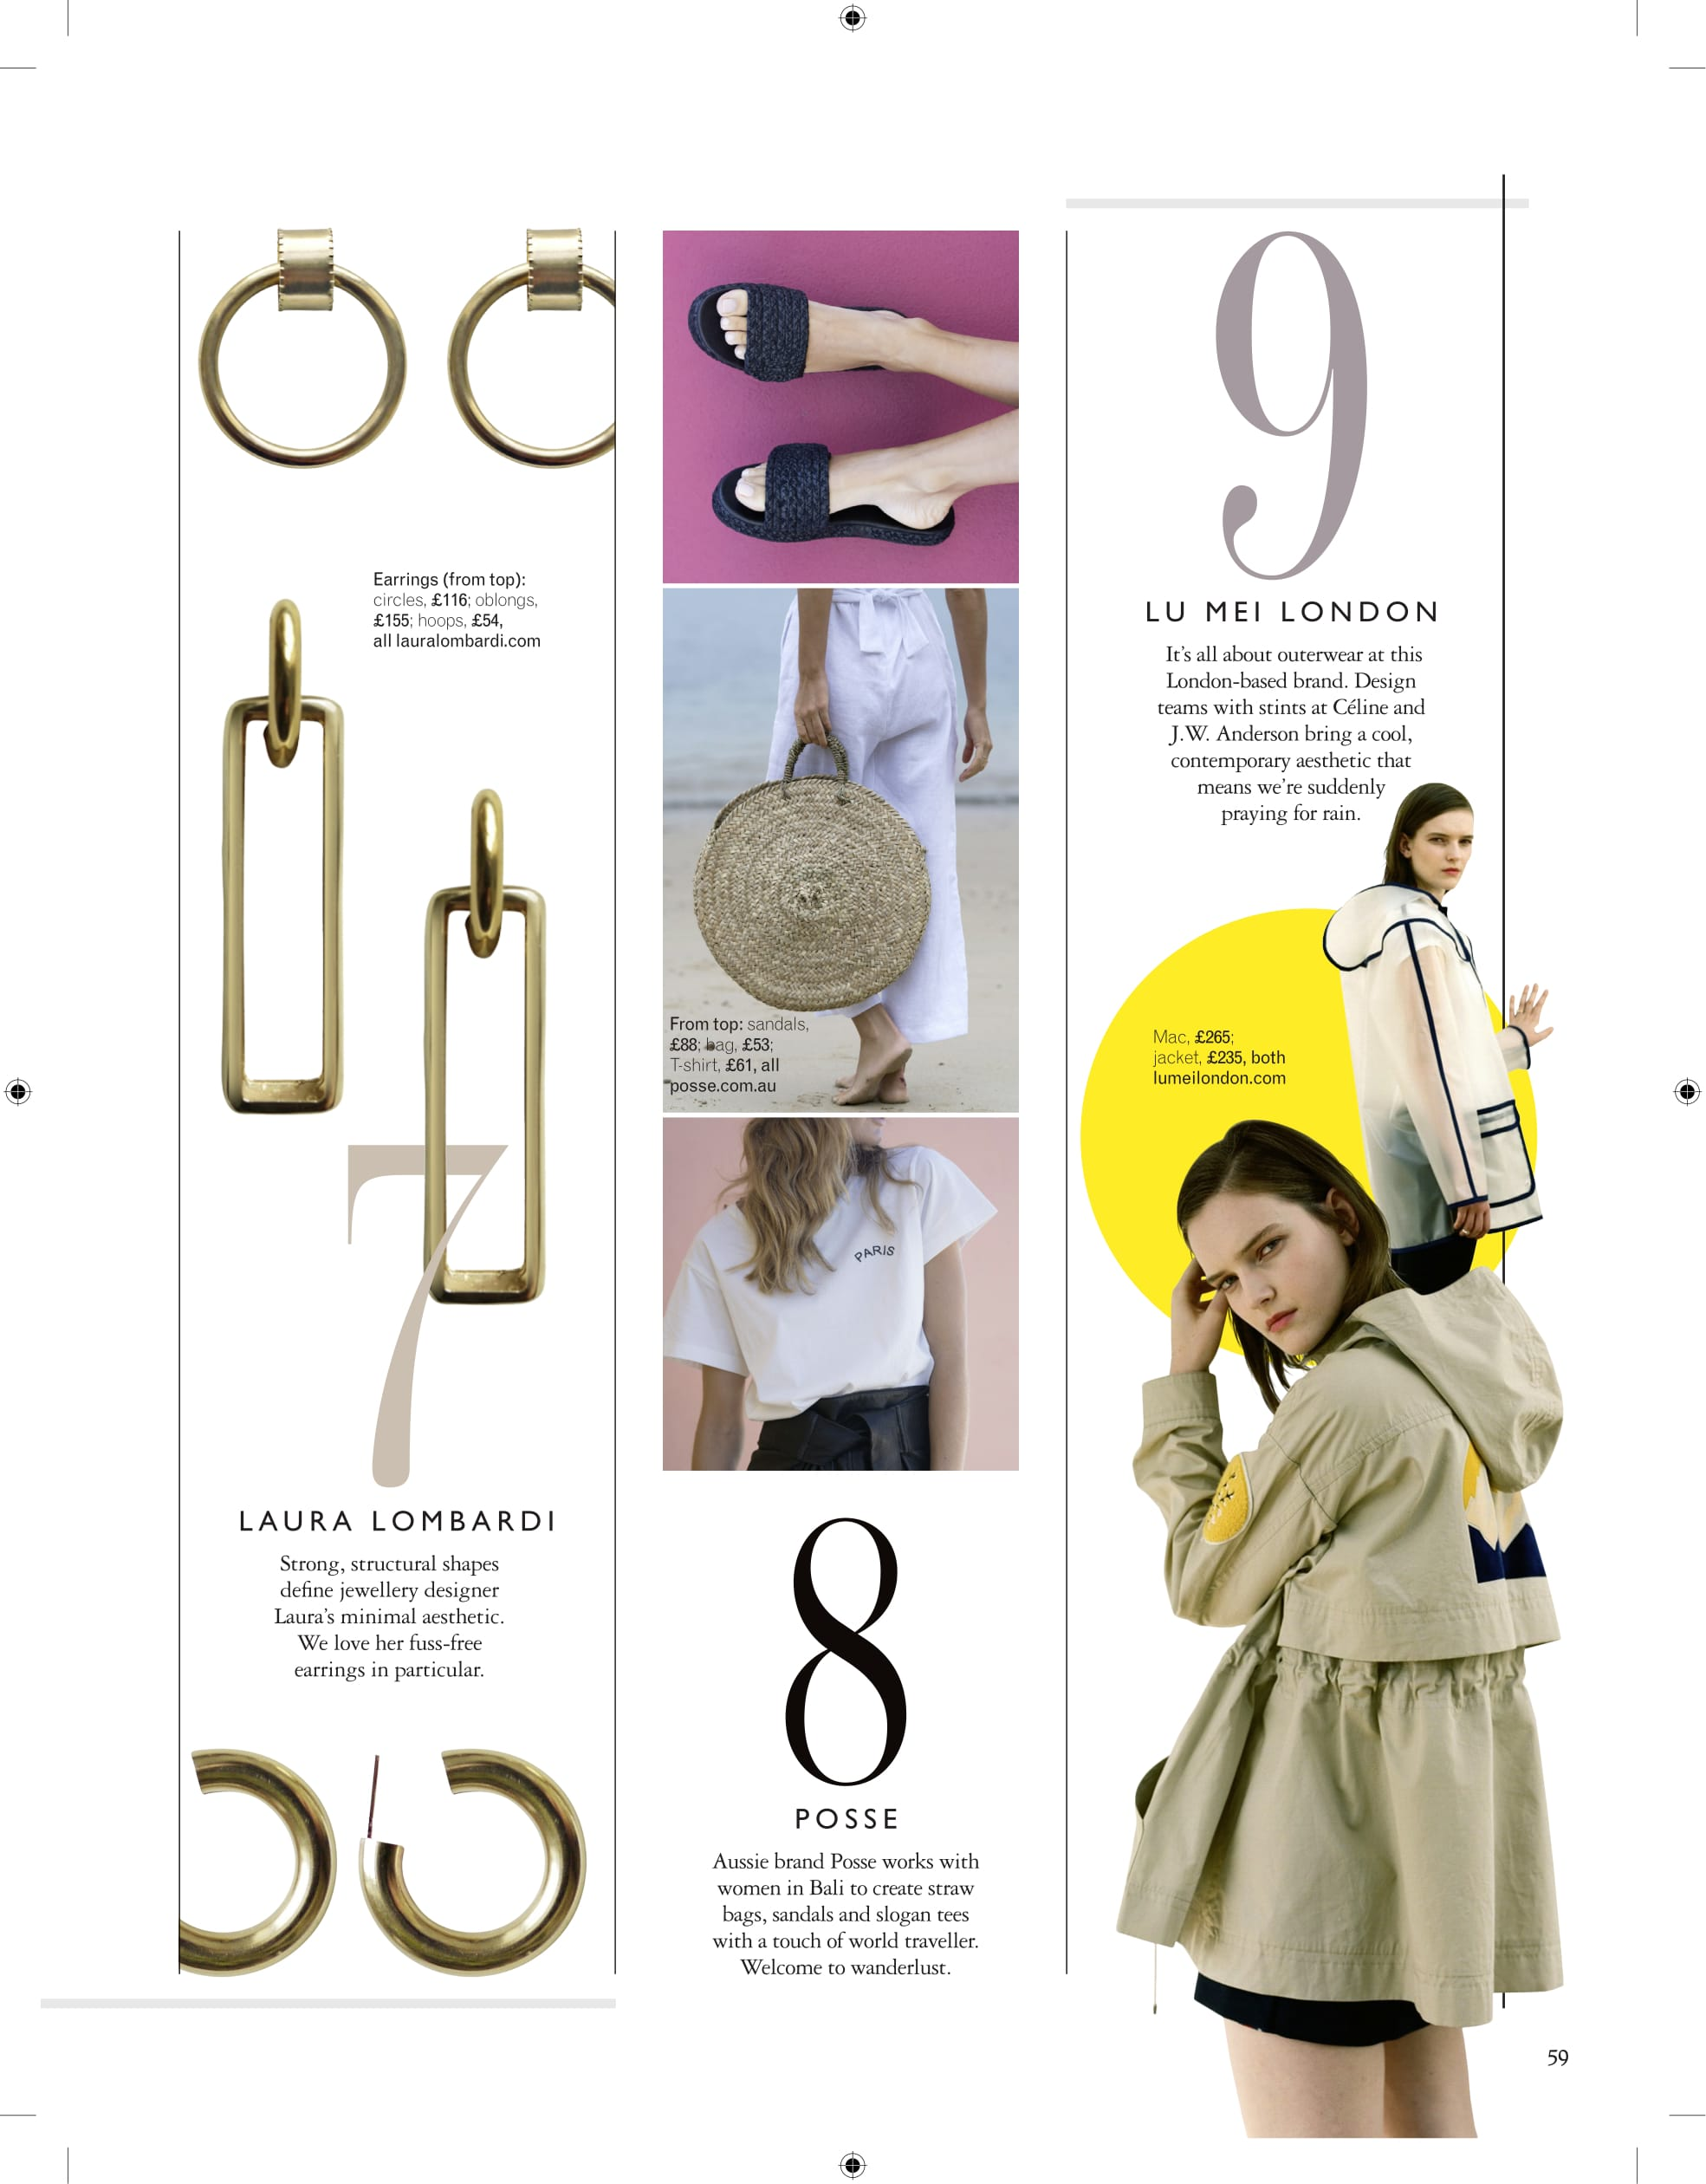 Fashion_Special New Brands to Shop 5pp_pdf_4-1.jpg